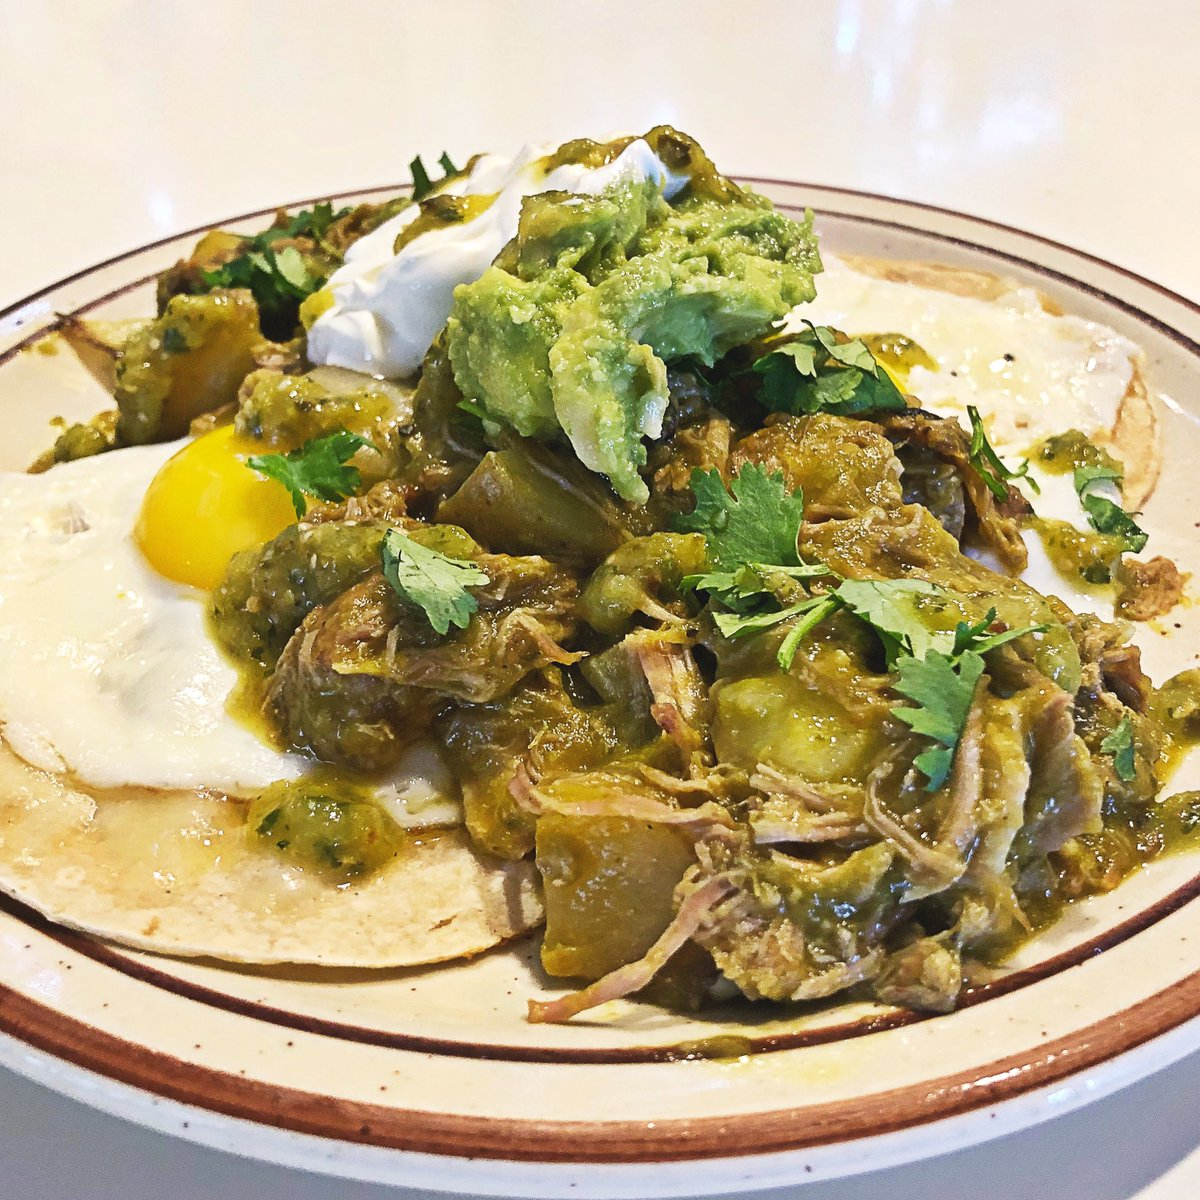 Huevos Verdes: two corn tortillas with melted cheese, two eggs any style, chile verde stew, guacamole and sour cream.